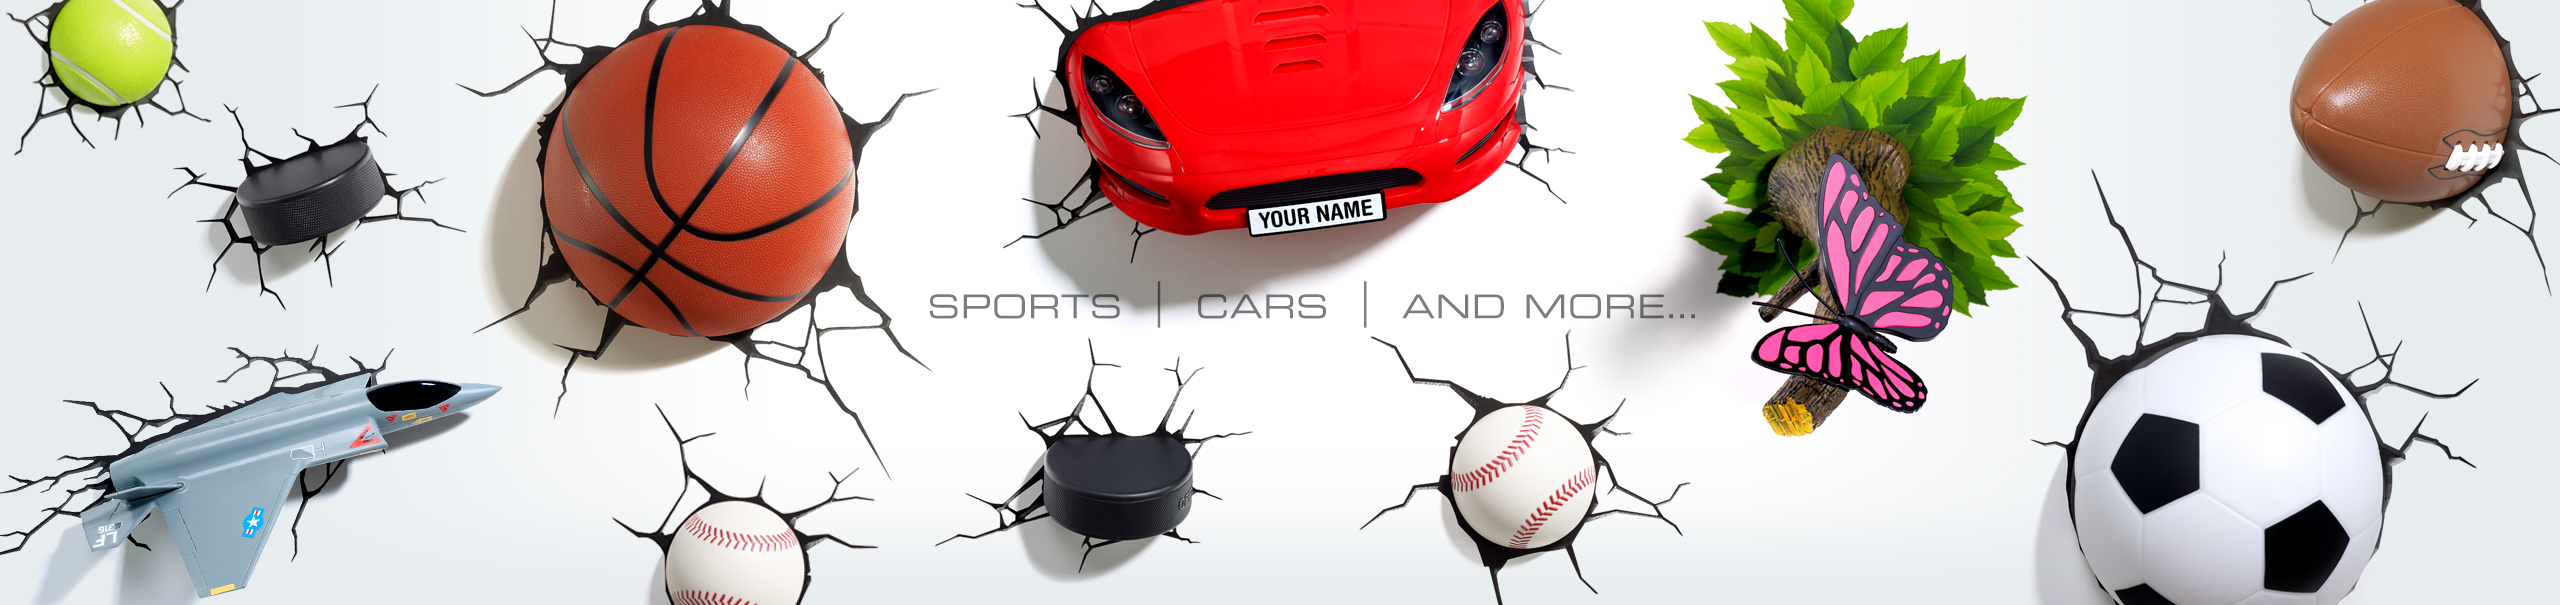 Sports / Cars + More Banner